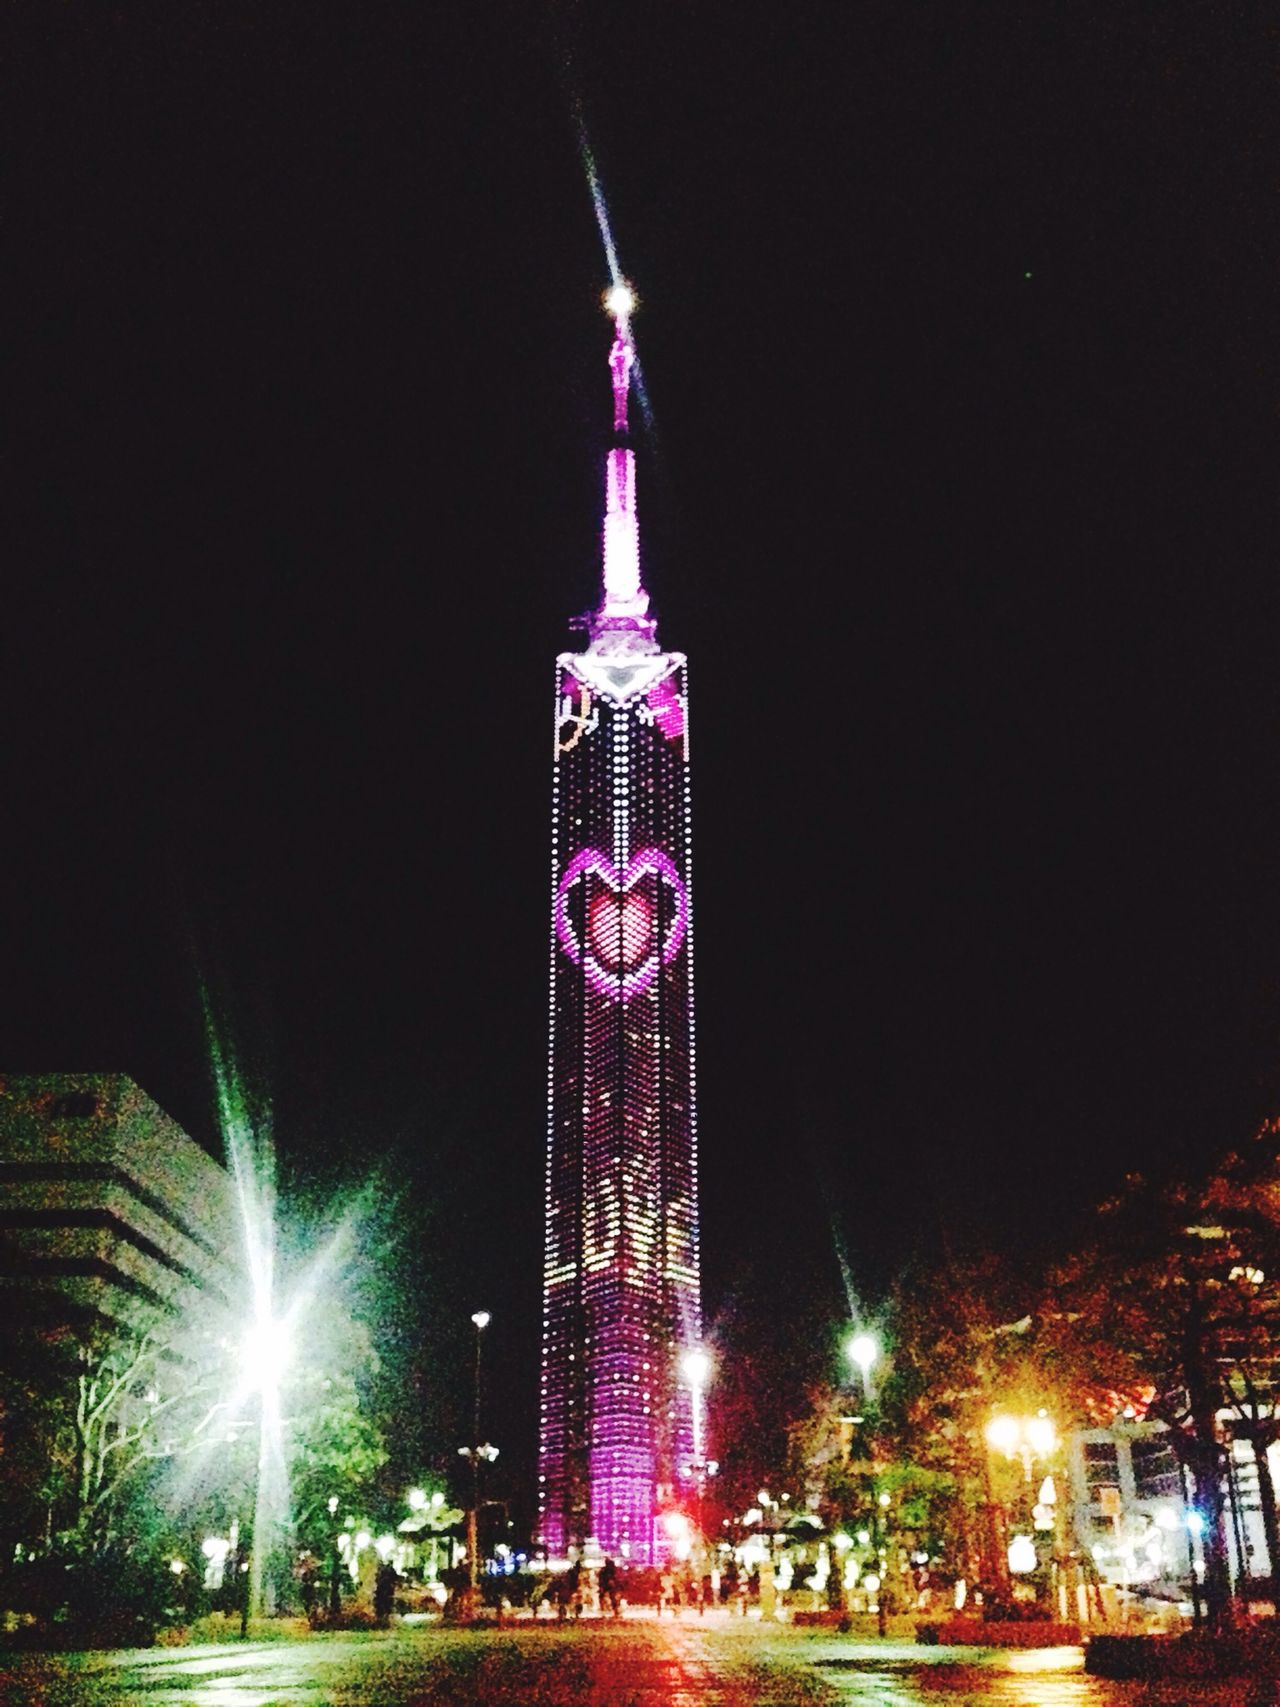 Fukuoka tower Fukuoka Tower Fukuoka,Japan IPhoneography IPhone Night Lights Japan HappyValentine'sDay